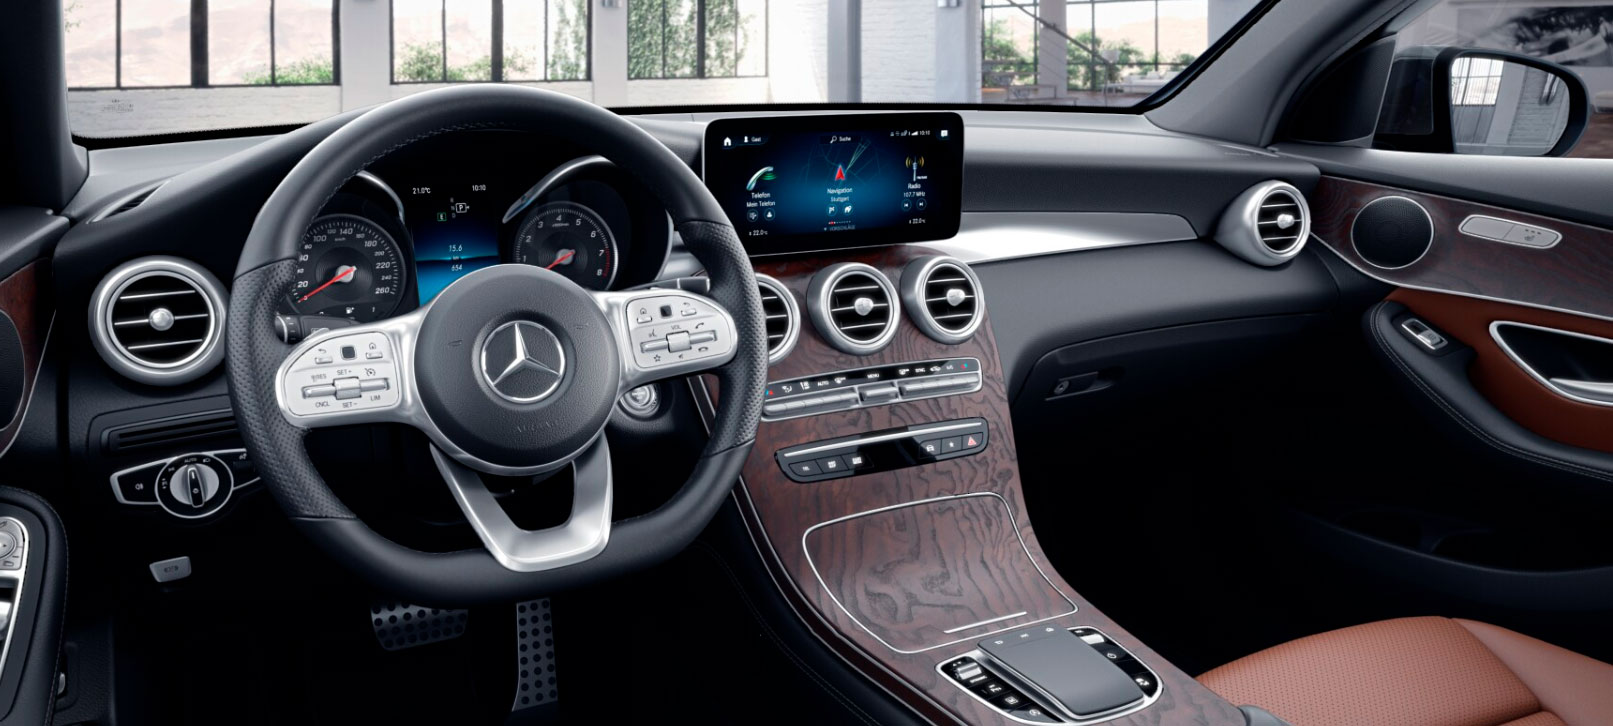 Mercedes-Benz GLC Coupe фото 3